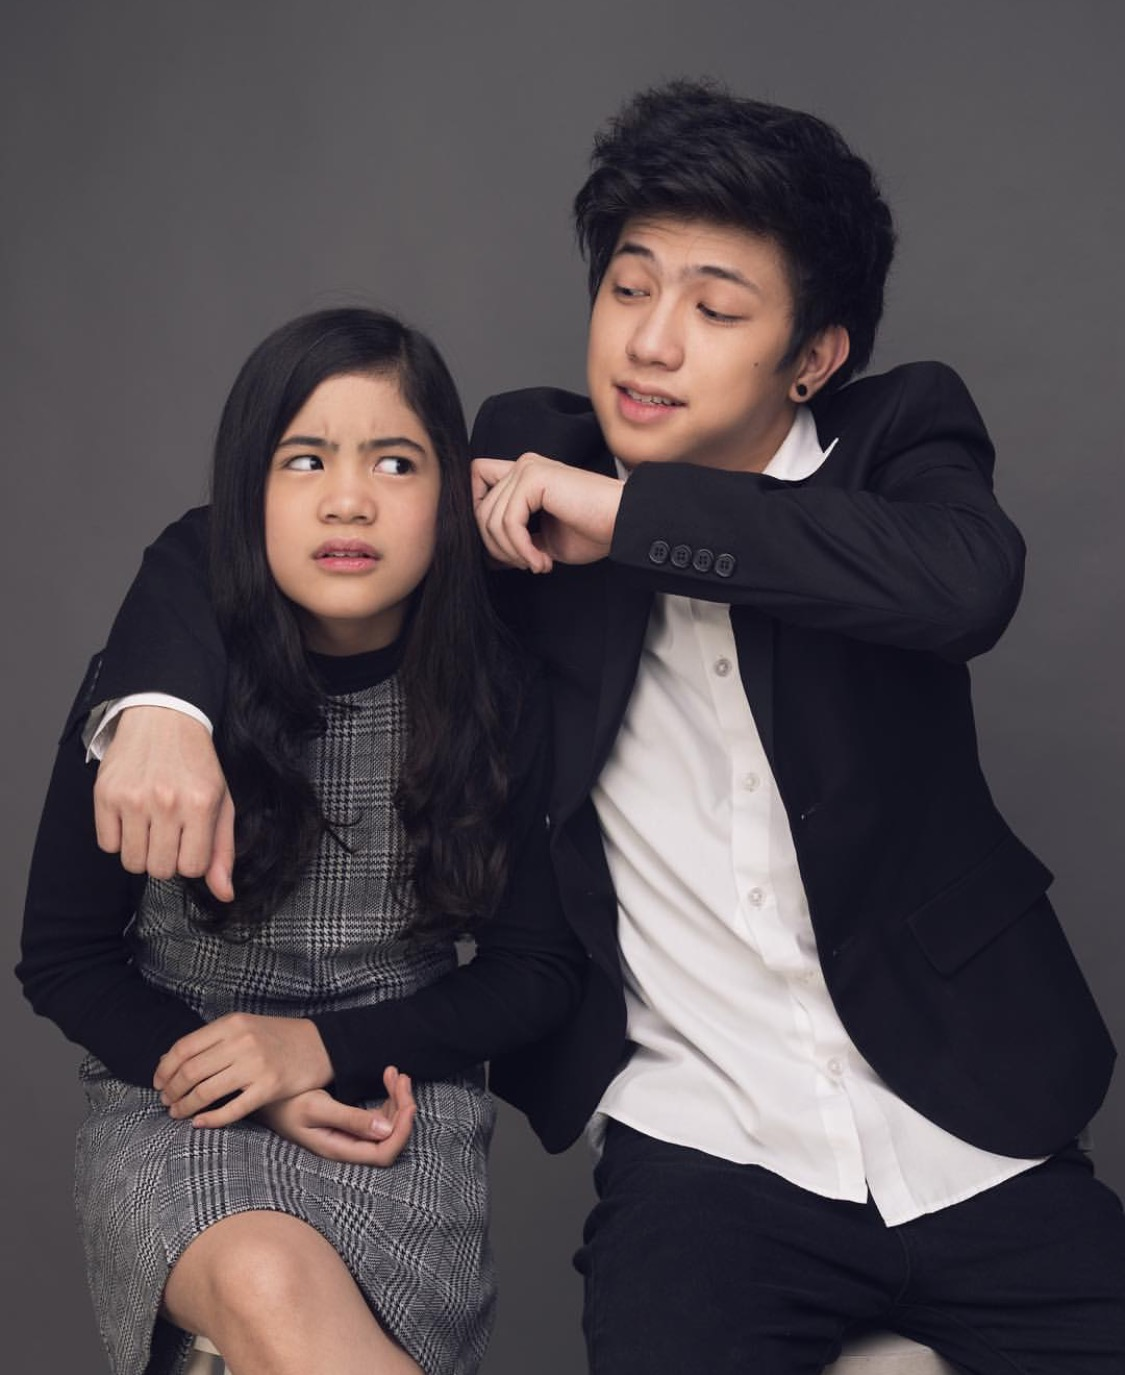 Who are Ranz and Niana Kyle?